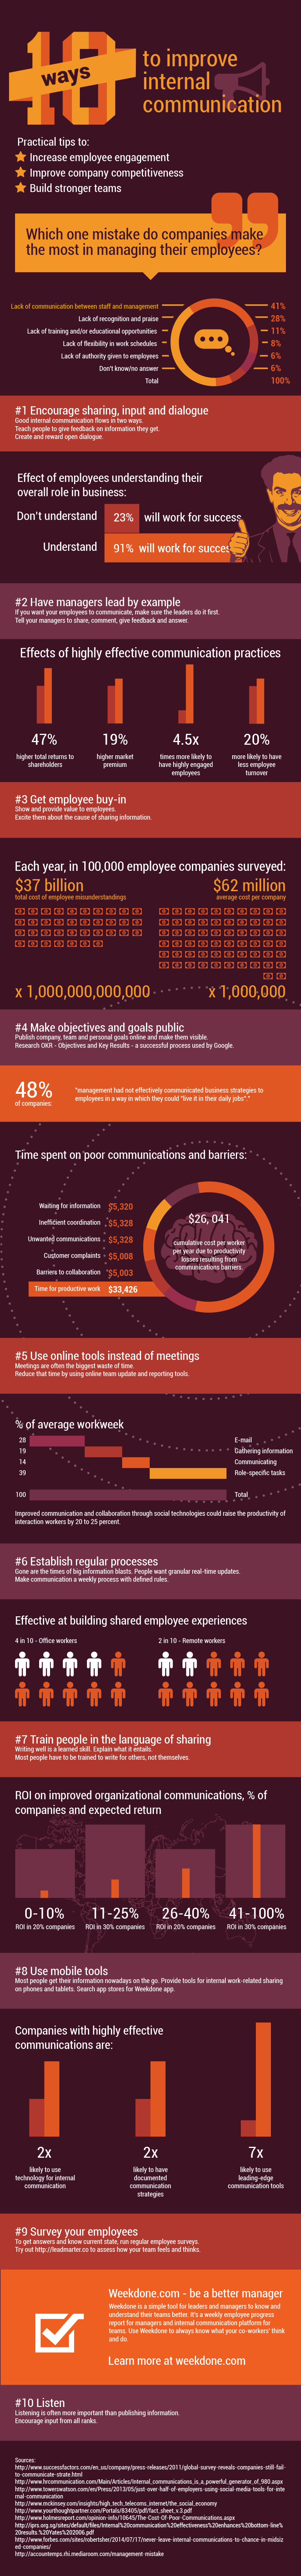 Infographie 225 - Internal Communication ICinfography